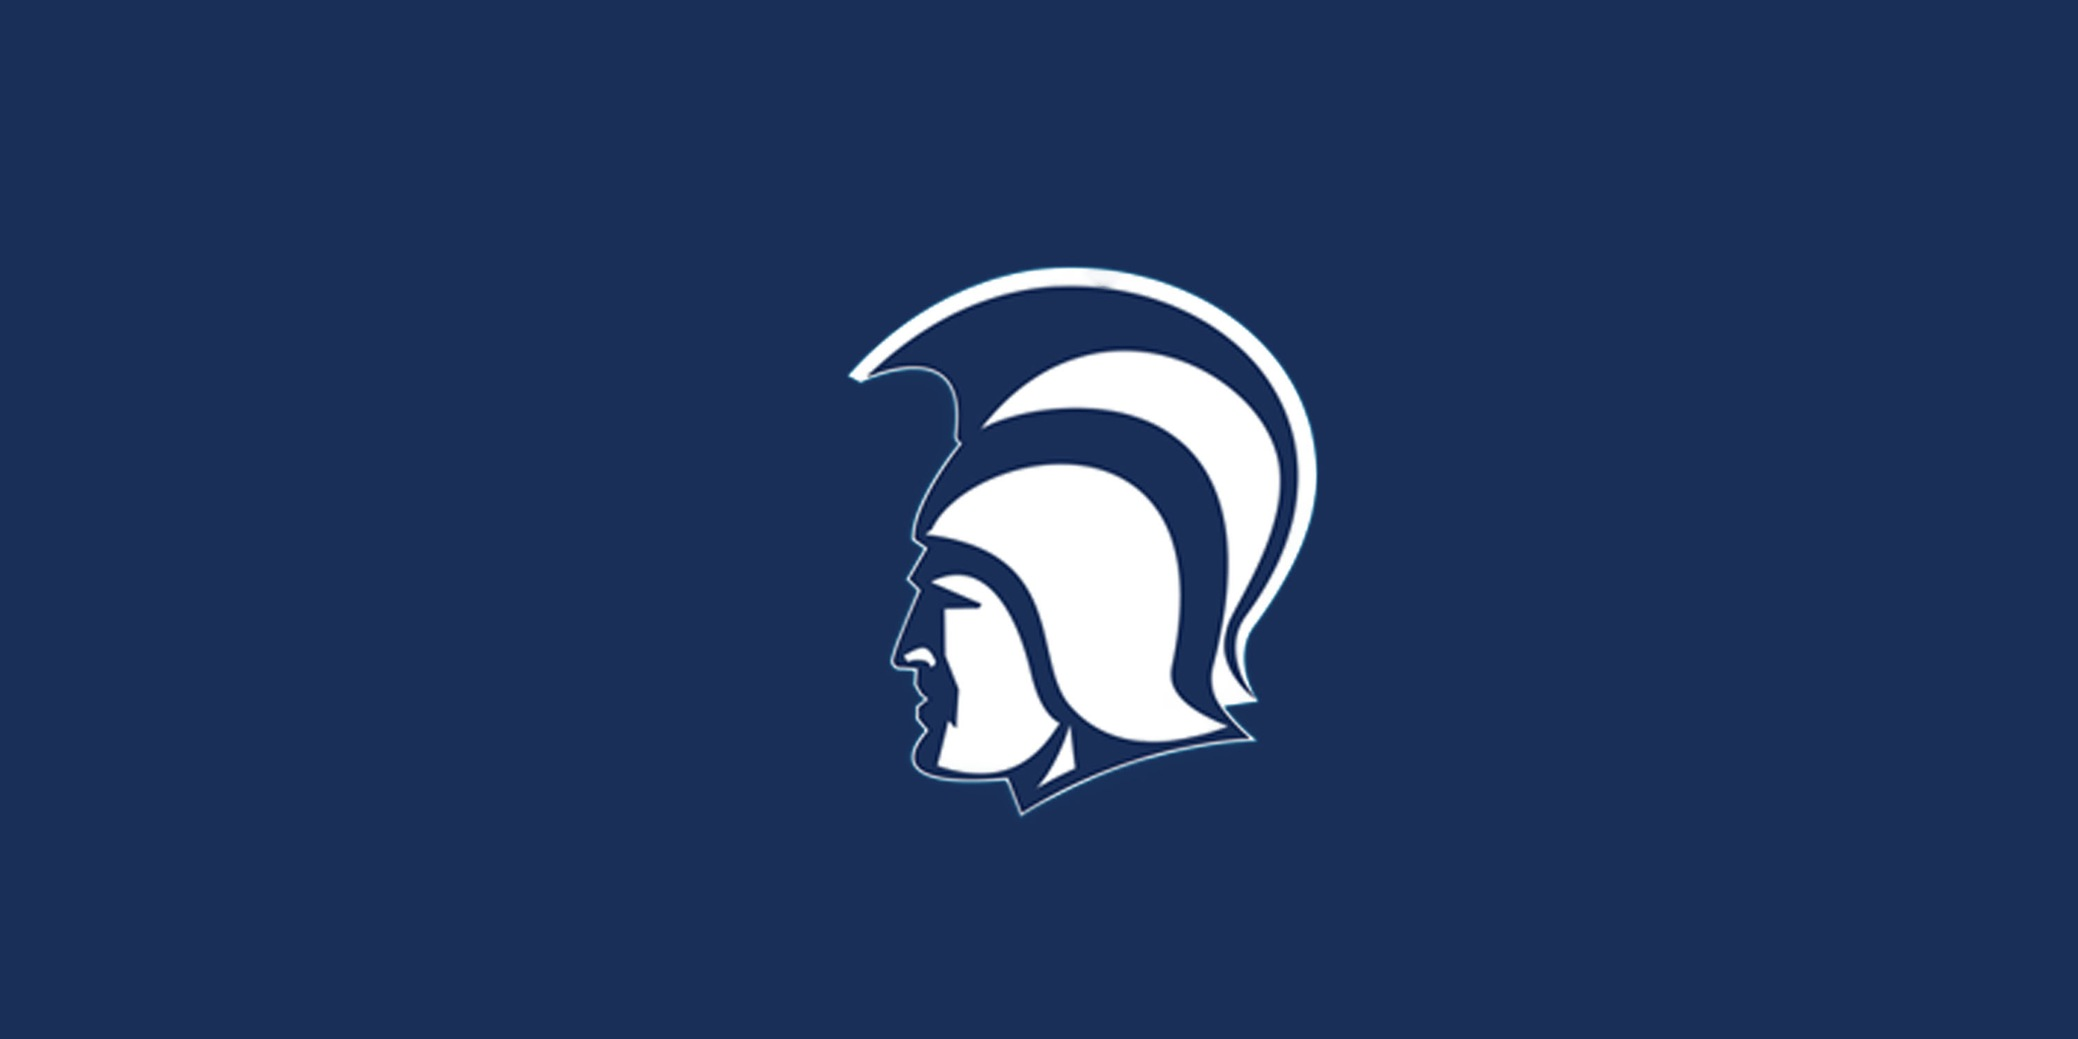 Spartan Head with Navy background.